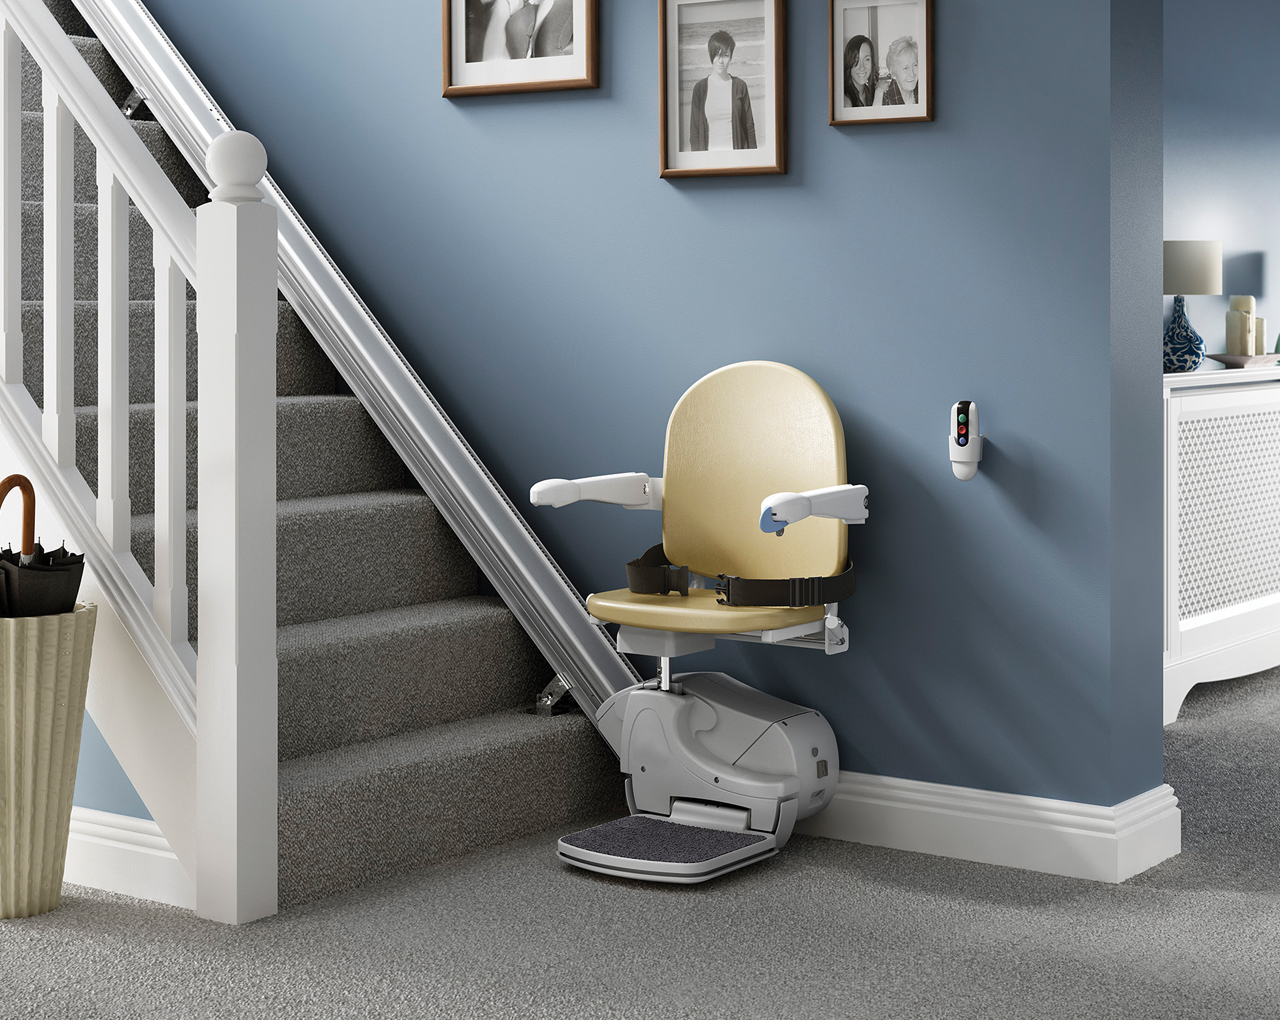 950 Compact Stair lift